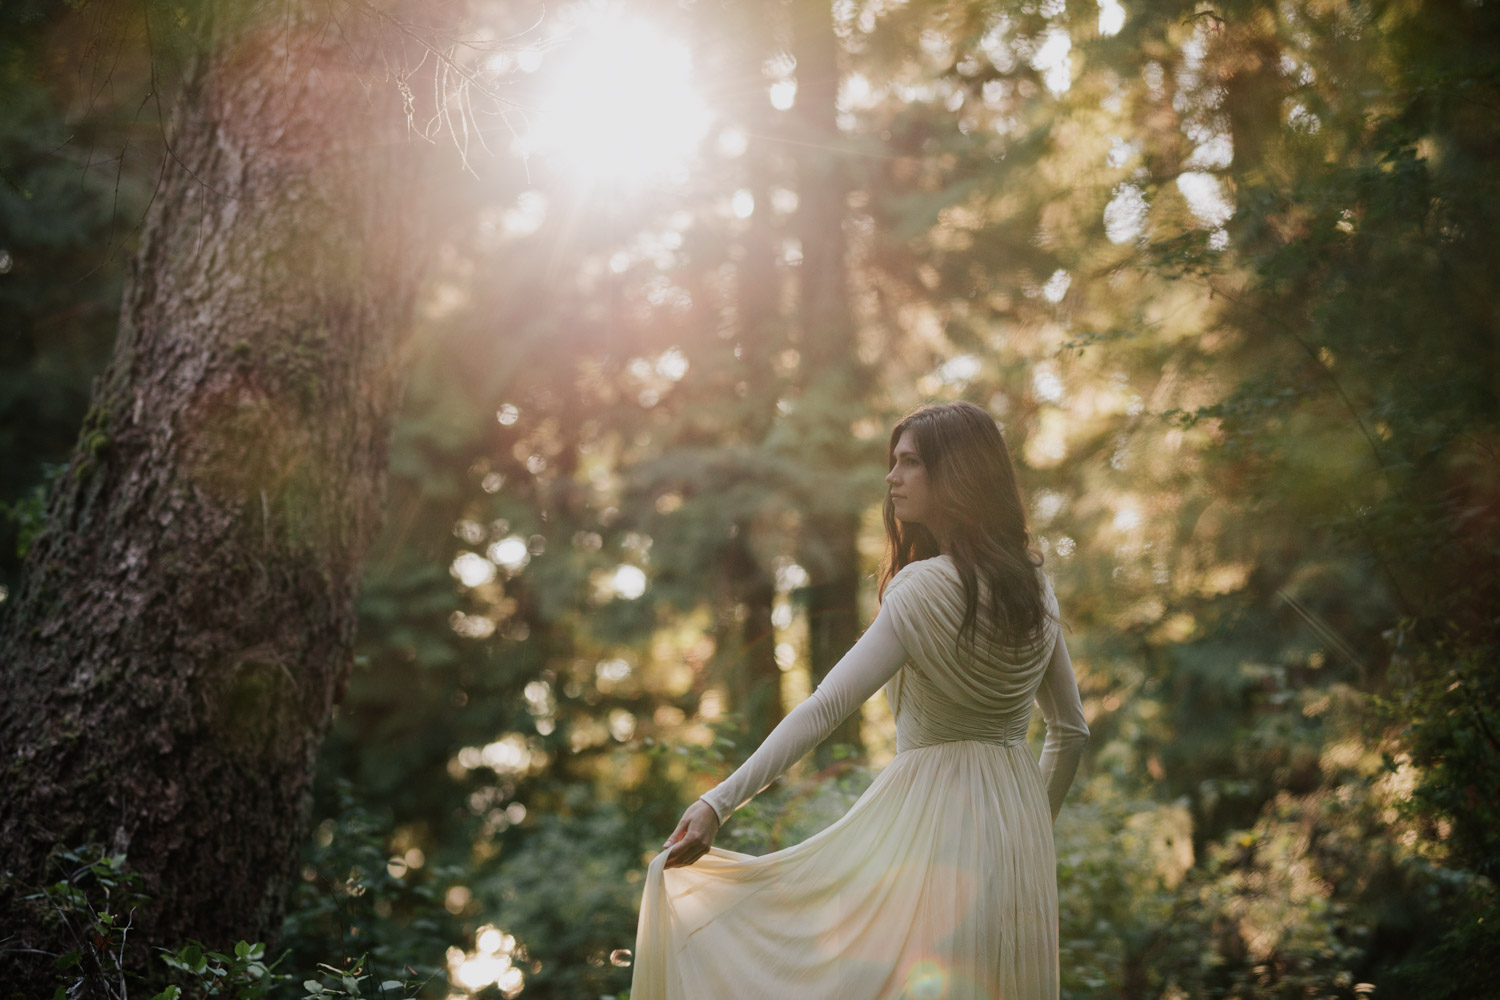 Etherial Sunlight Shines Through Forest Onto Boho Vancouver Island Bride Wearing Long Sleeve Dress